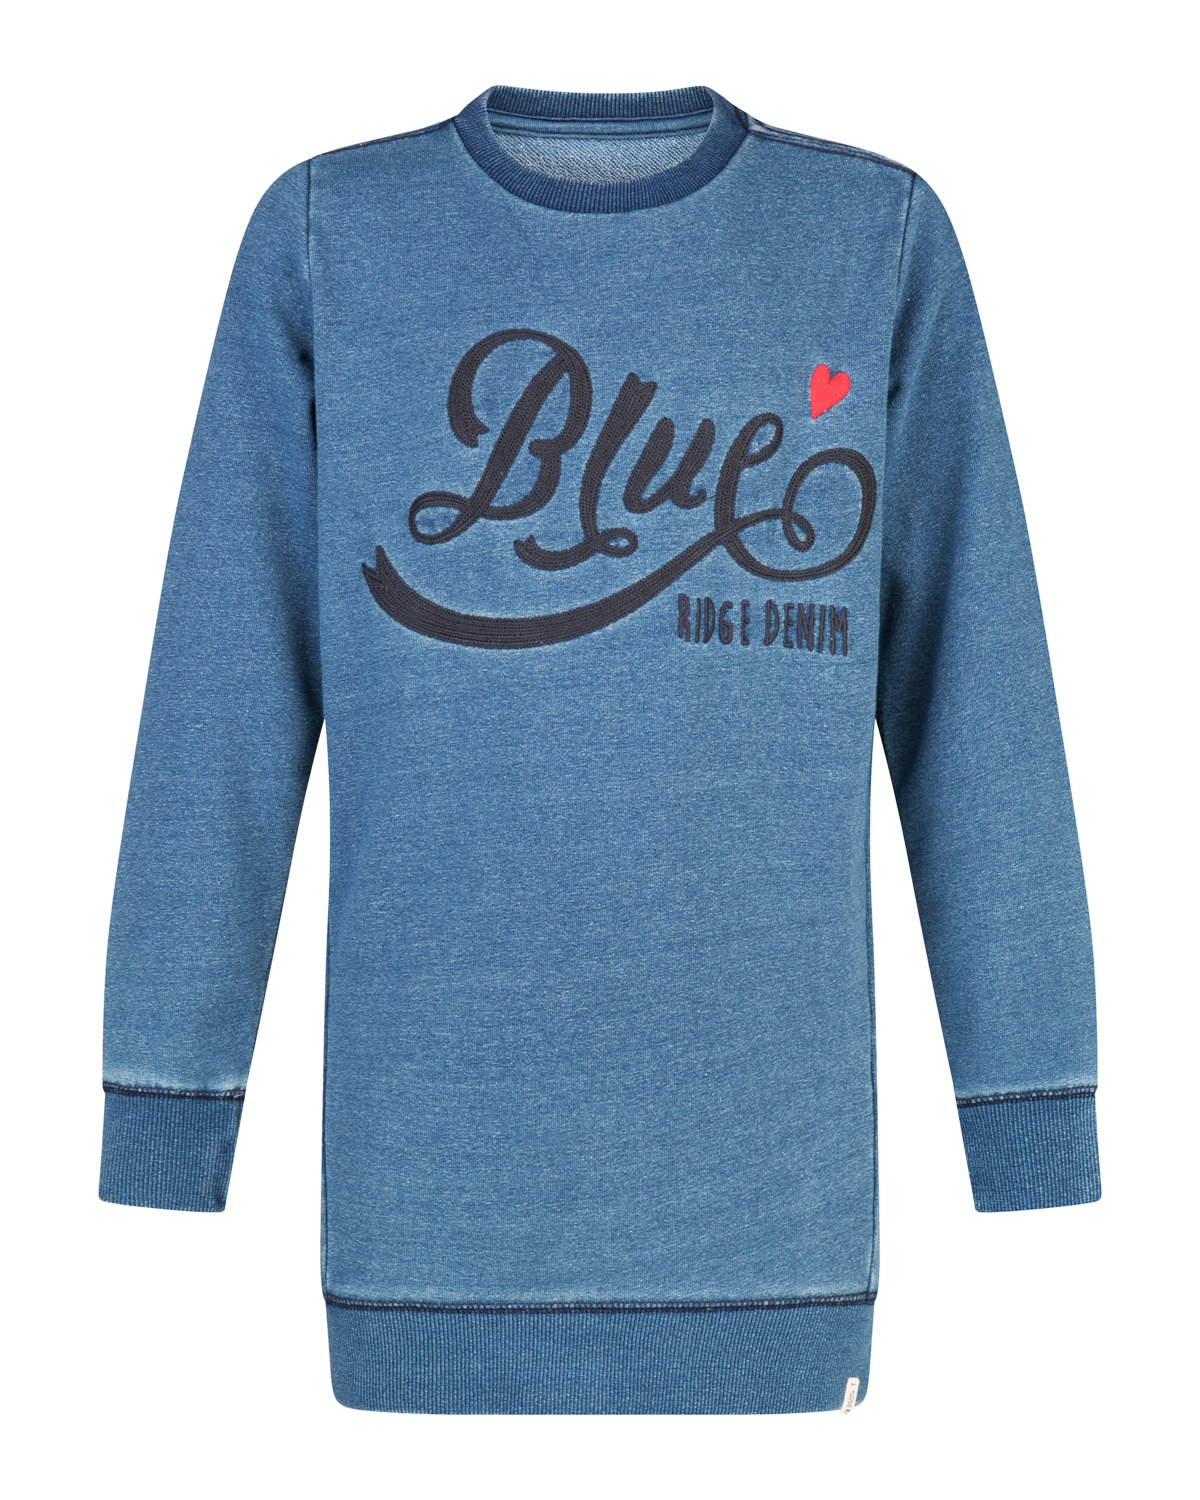 Meisjes blue rigde sweater dress